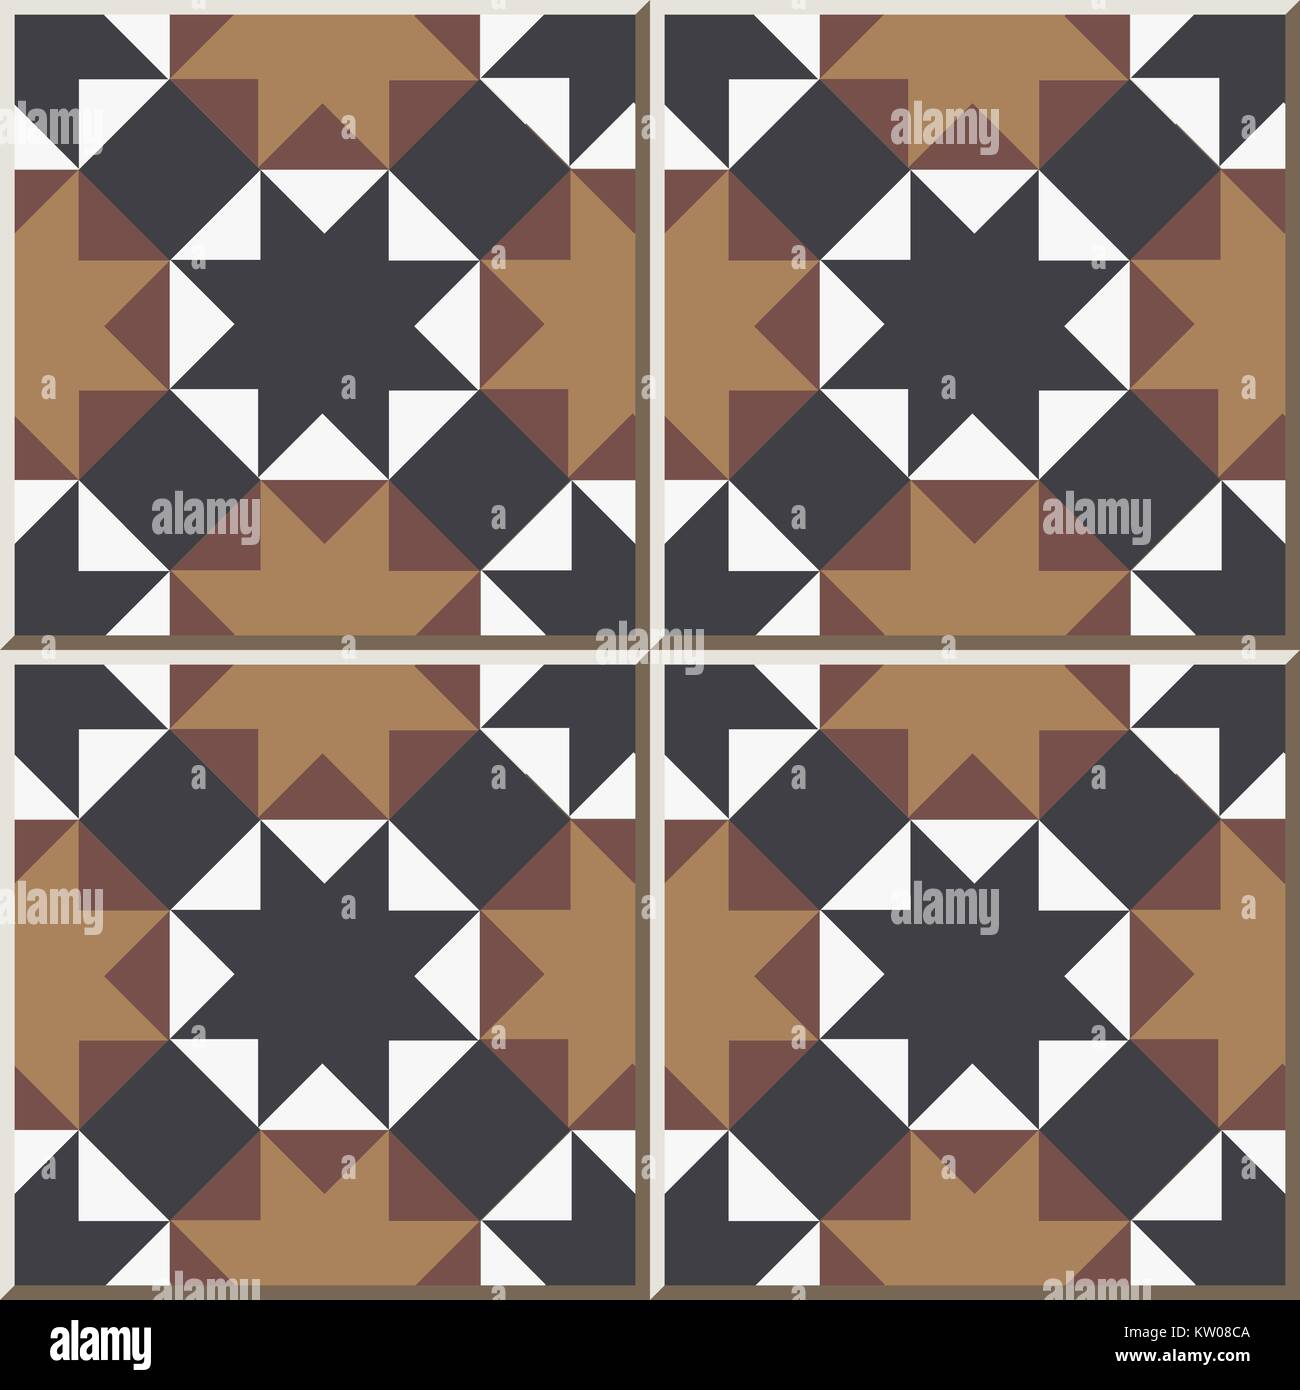 Ceramic tile pattern of octagon star cross triangle geometry stock ceramic tile pattern of octagon star cross triangle geometry dailygadgetfo Image collections